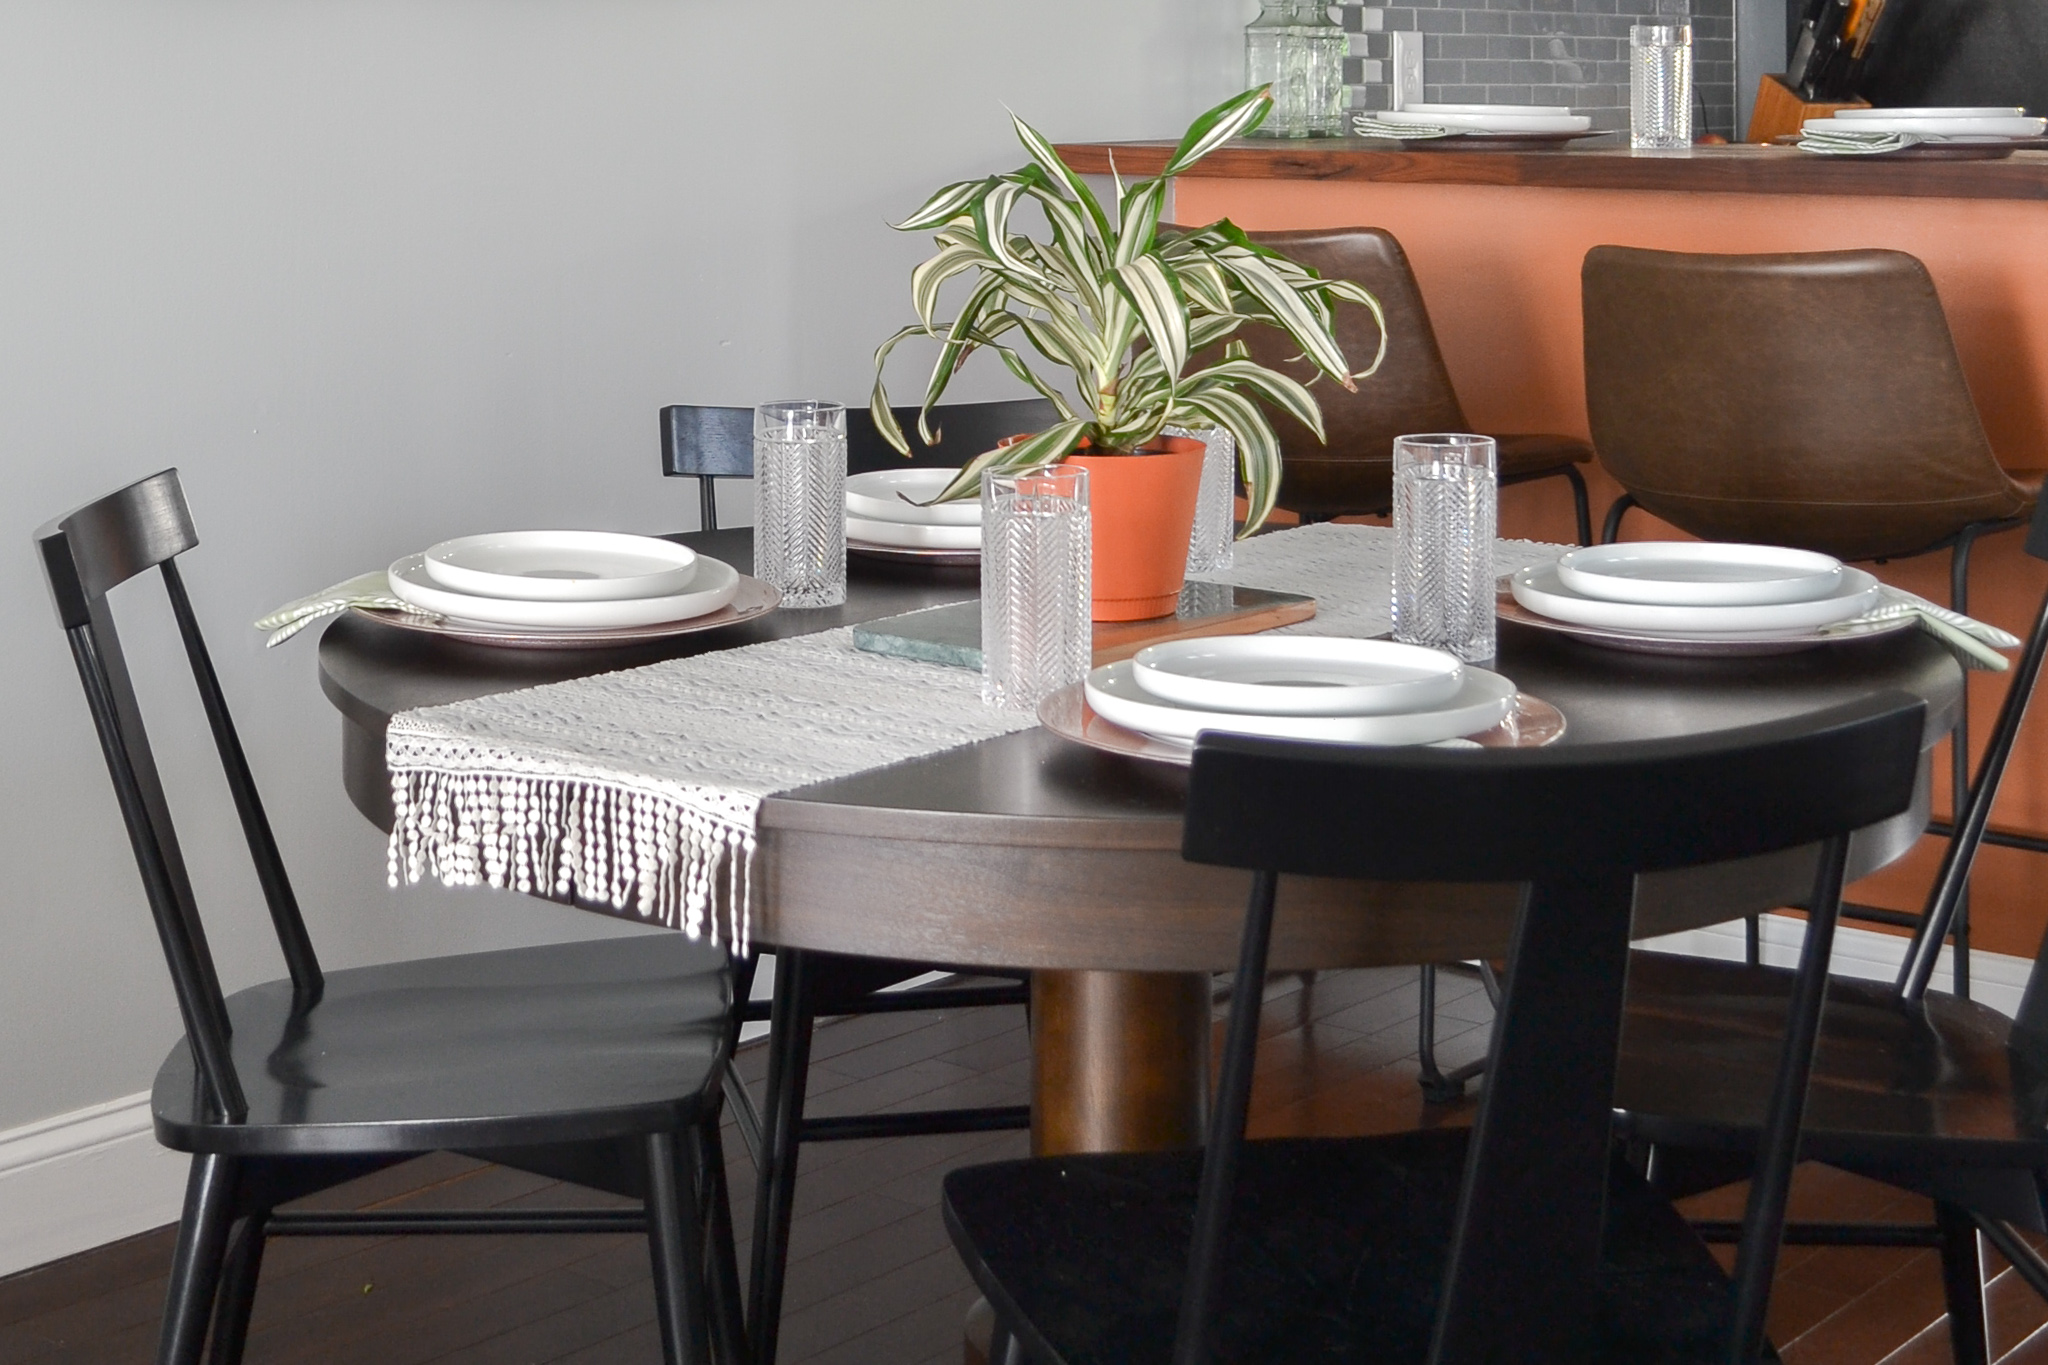 Dining Room Reveal - one room challenge: week 6(SPRing 2019)